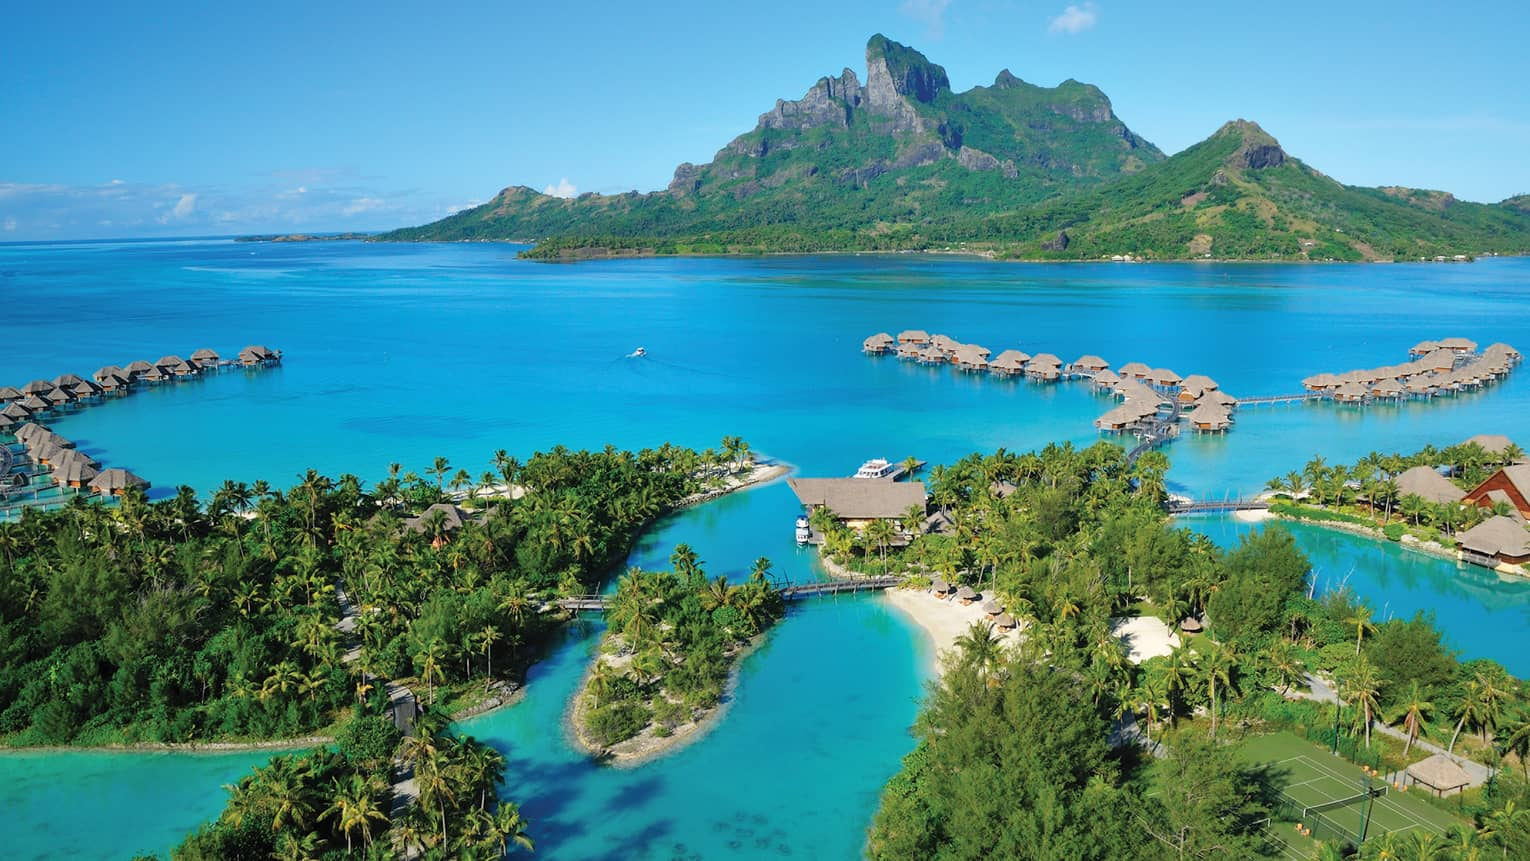 Aerial view of Bora Bora overwater bungalows in lagoon, mountain